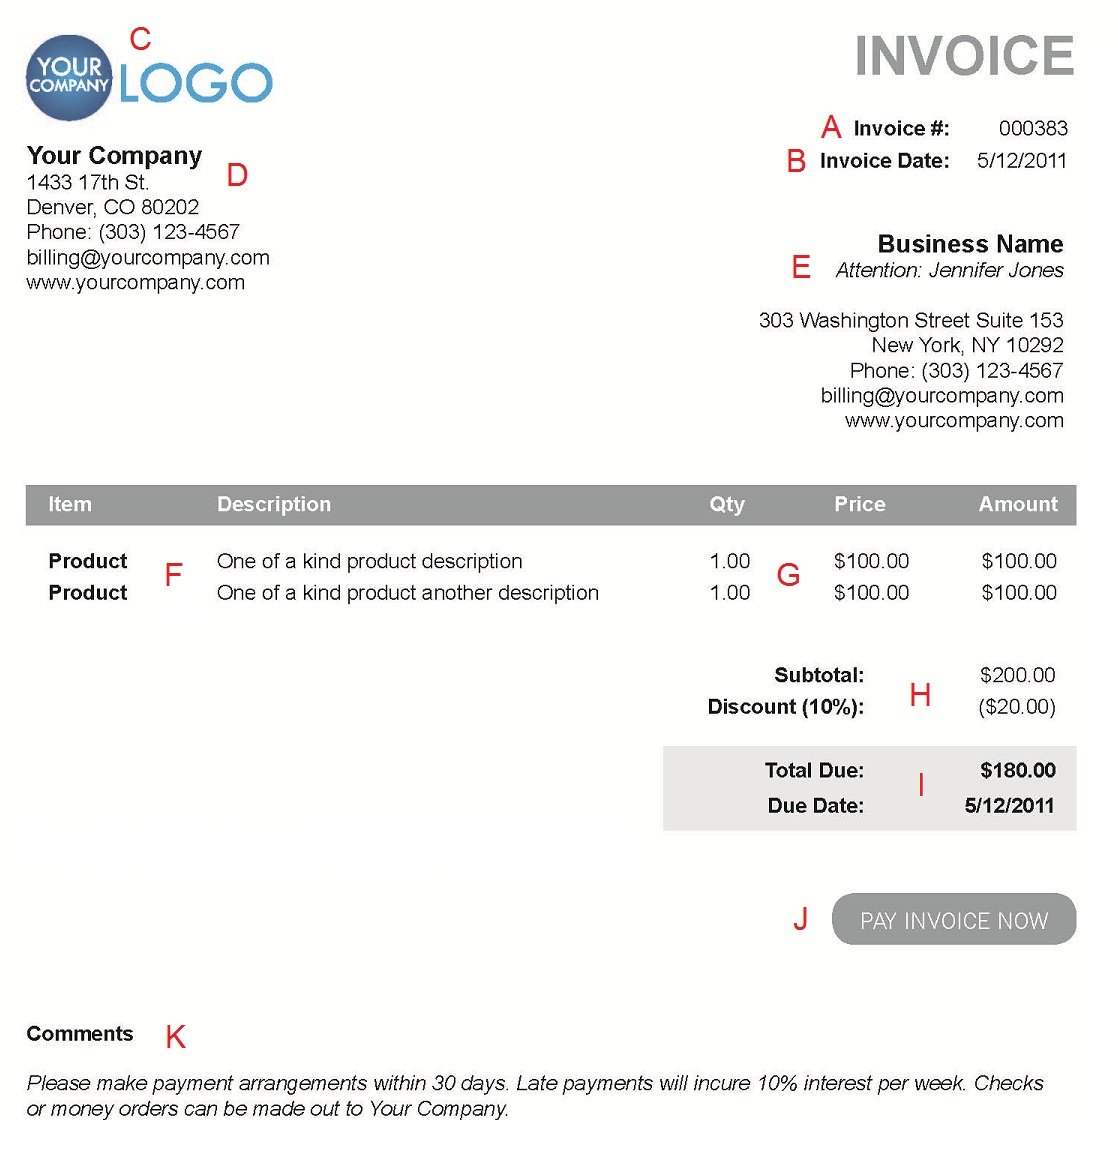 Aaaaeroincus  Terrific The  Different Sections Of An Electronic Payment Invoice With Fetching A  With Alluring Simple Invoice Template Pdf Also Invoice Advance In Addition How Do I Send A Paypal Invoice And Receipt Invoice Template As Well As Definition Of An Invoice Additionally Car Repair Invoice From Paysimplecom With Aaaaeroincus  Fetching The  Different Sections Of An Electronic Payment Invoice With Alluring A  And Terrific Simple Invoice Template Pdf Also Invoice Advance In Addition How Do I Send A Paypal Invoice From Paysimplecom